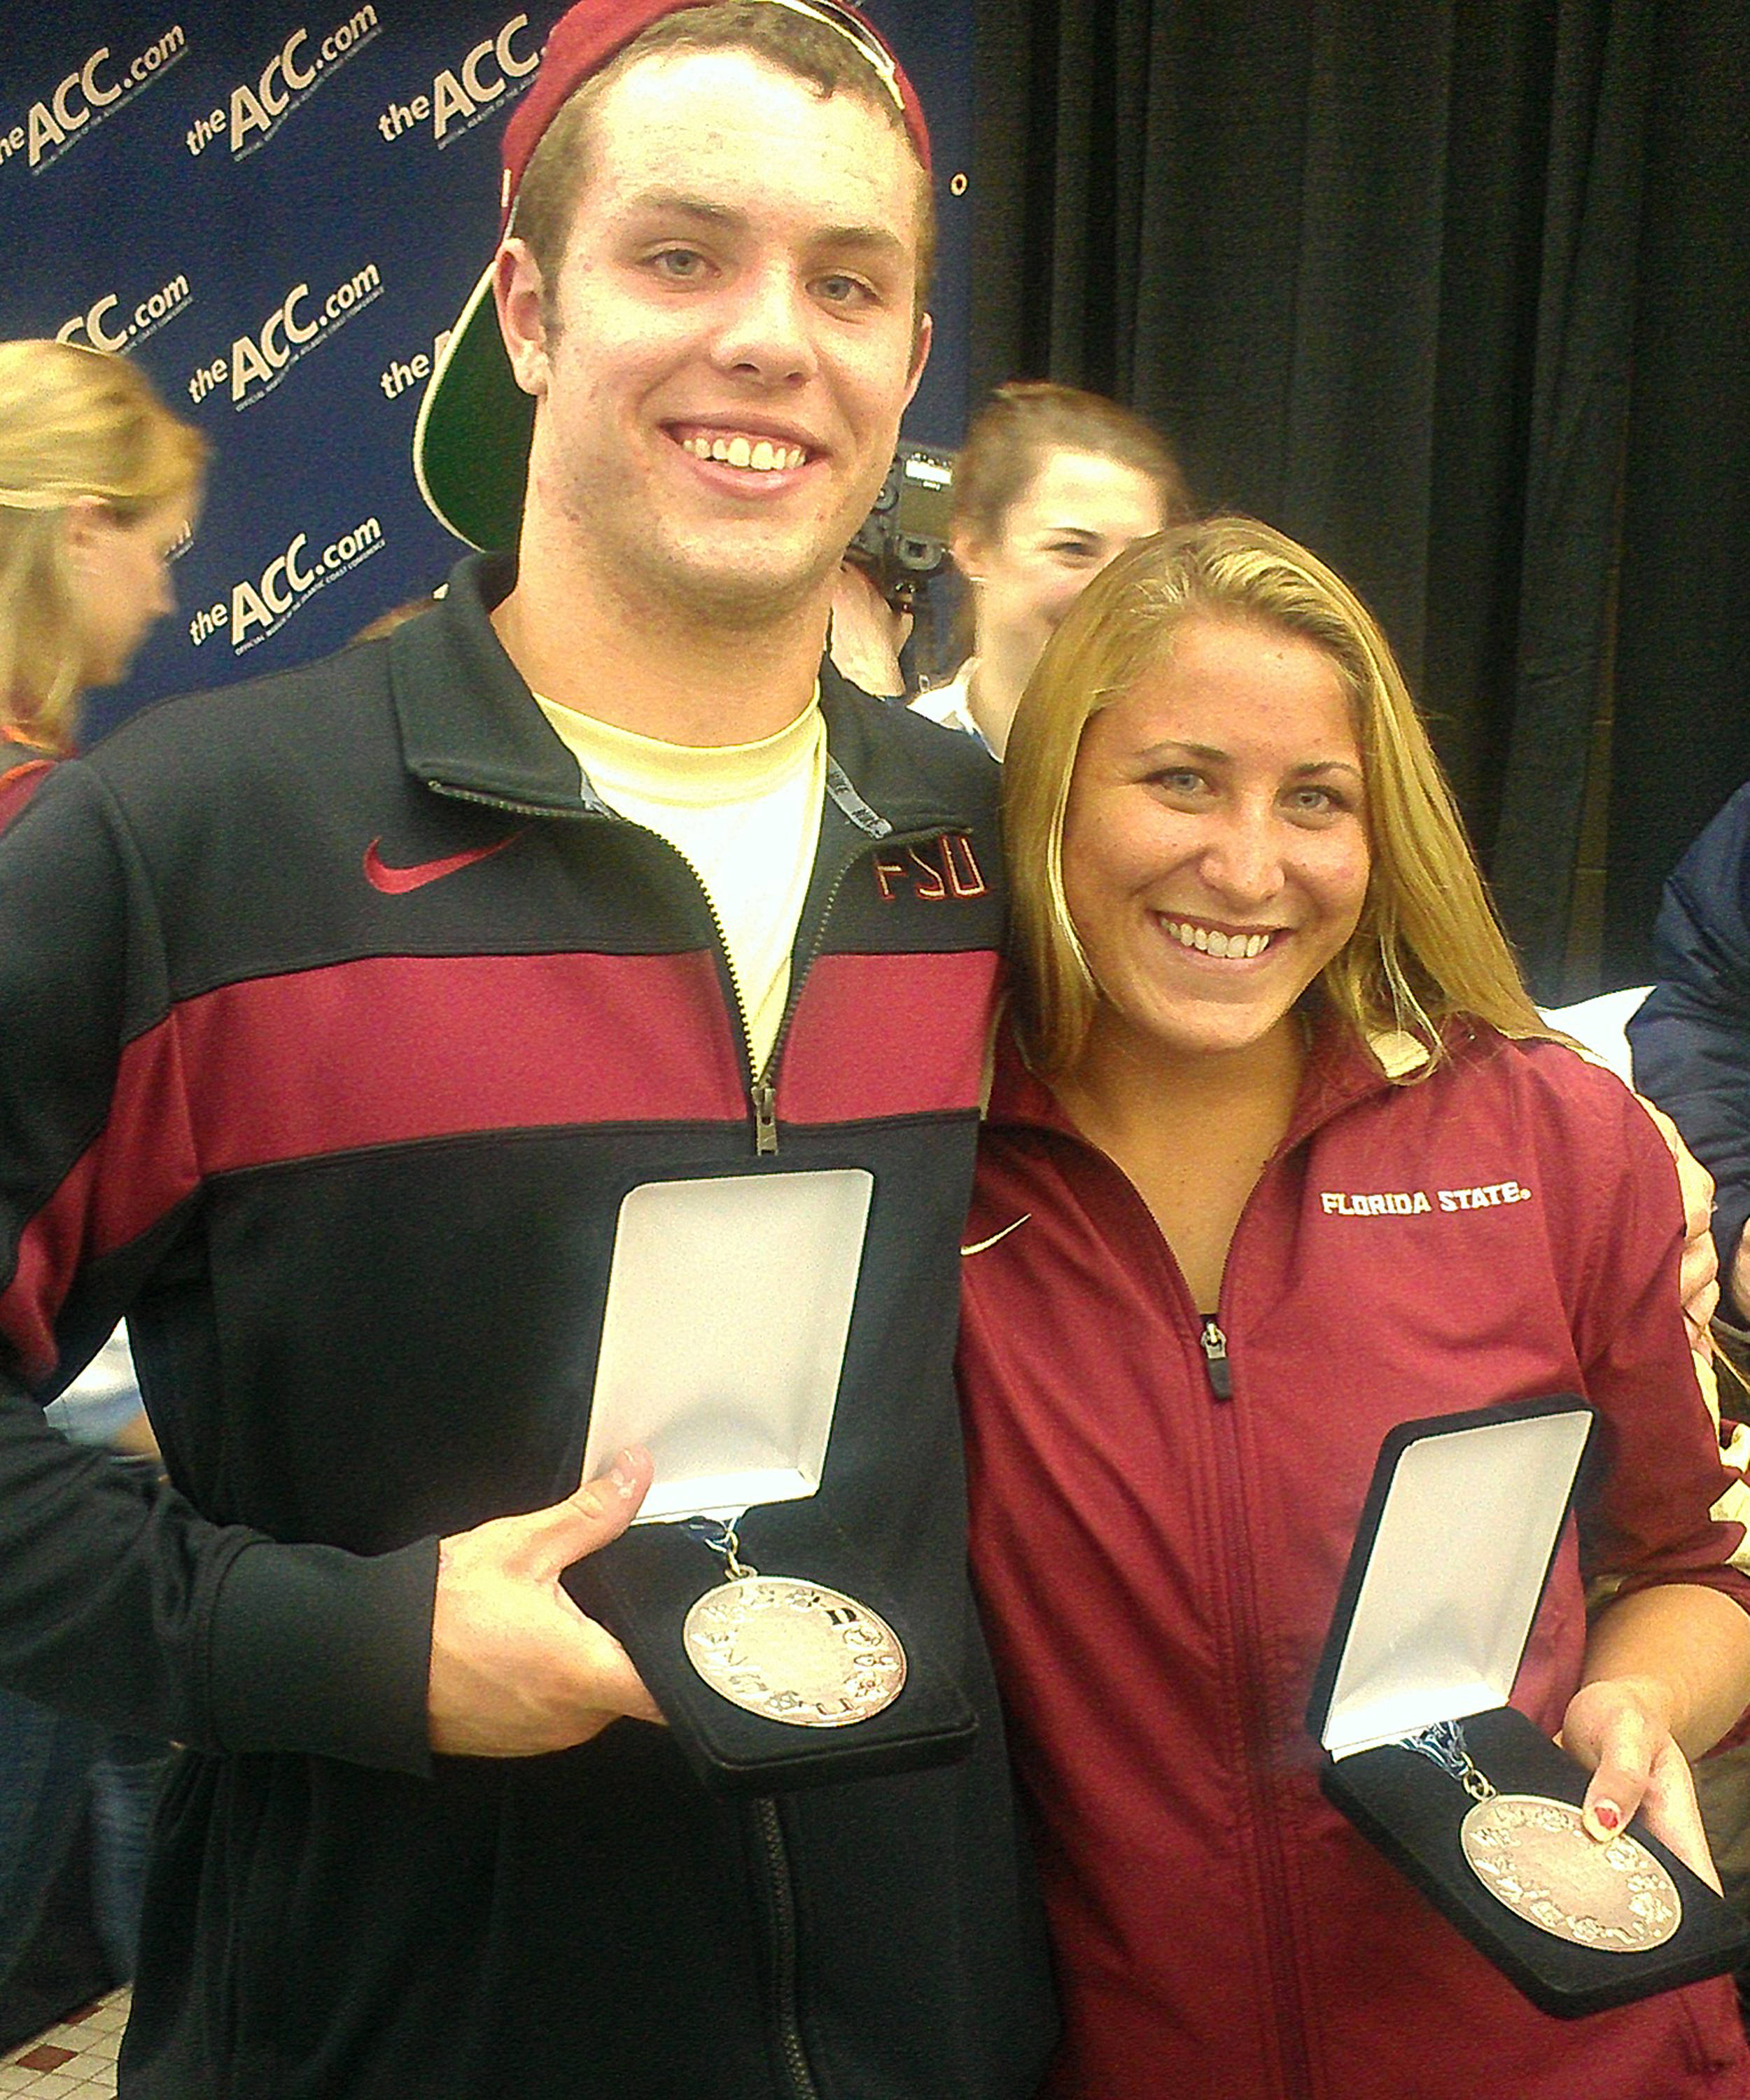 Ford and Ariel pose together with their medals.